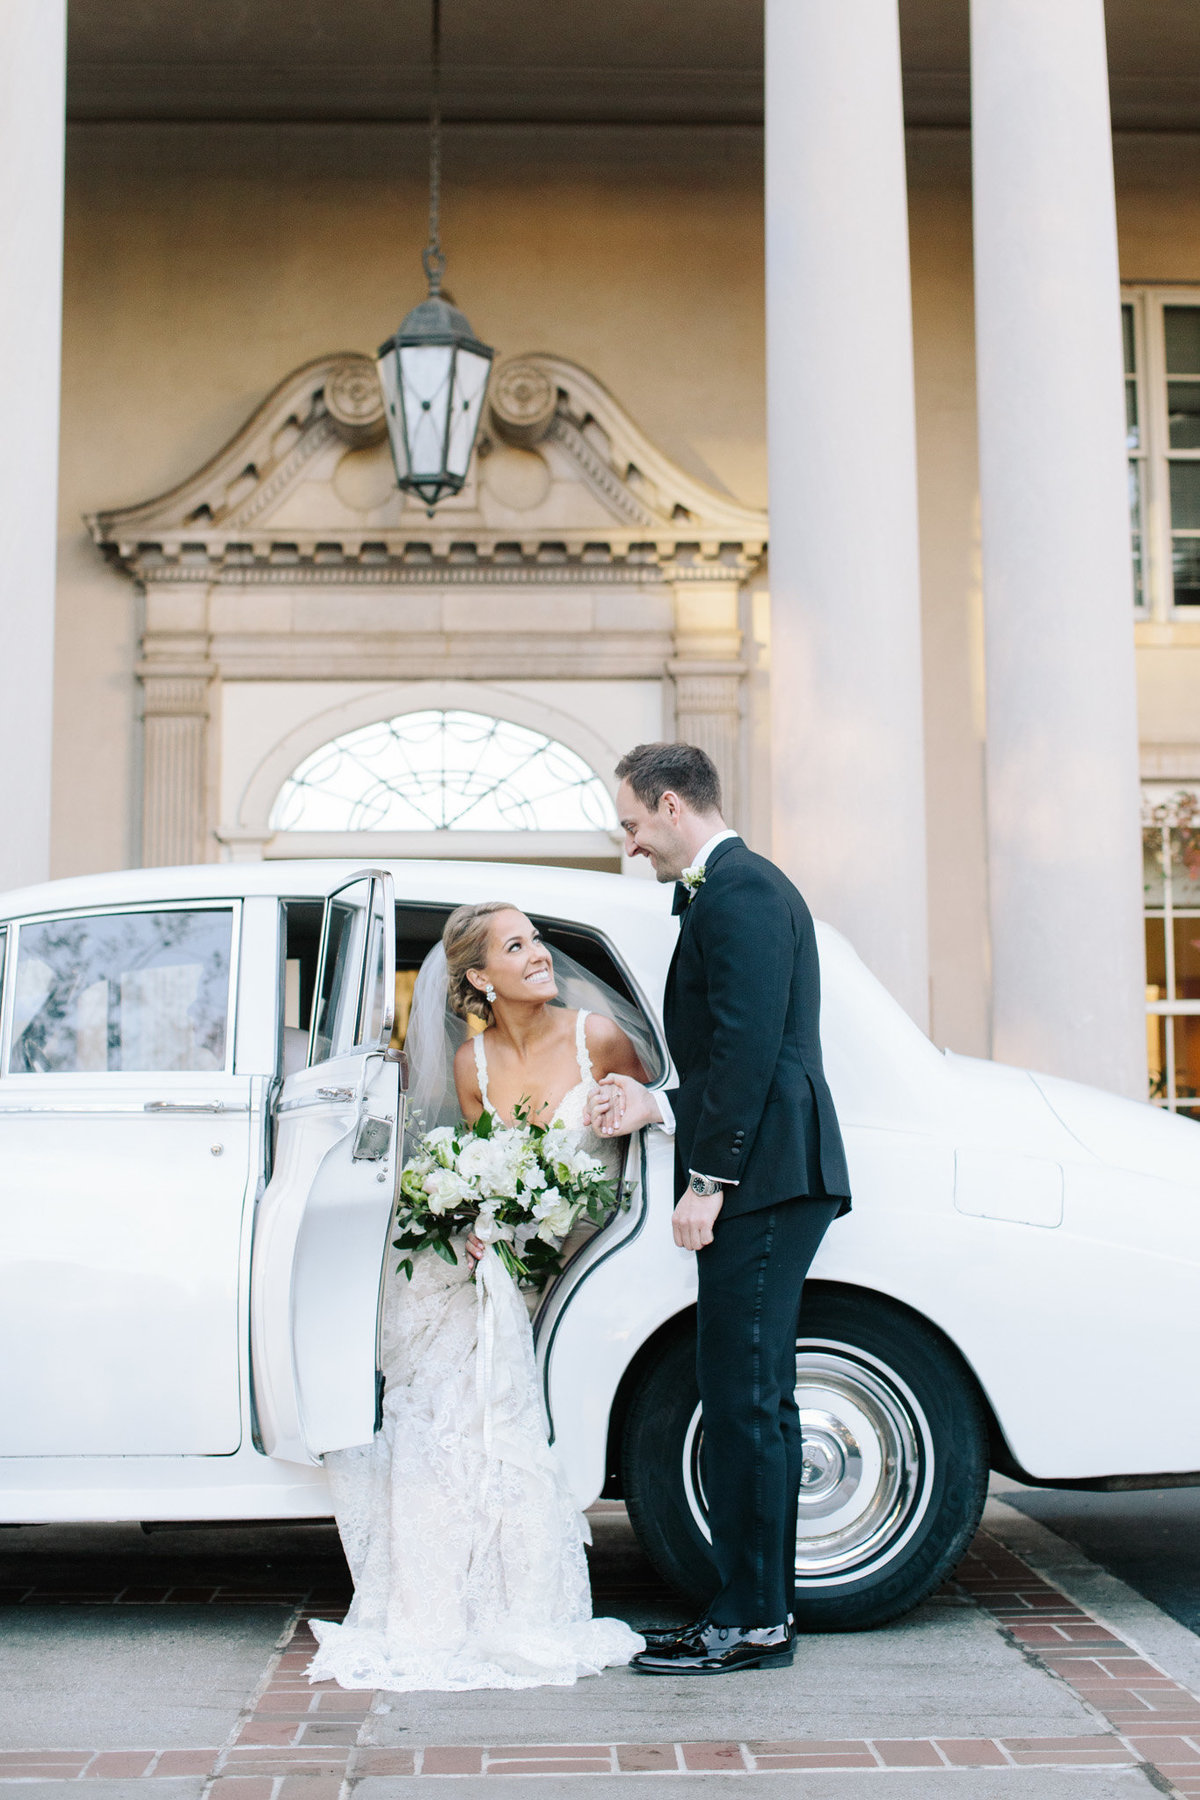 The Biltmore, a Rolls Royce and a bride and groom so deeply in love.  What more could you want?  Says Atlanta's premier wedding photographer Rebecca Cerasani.